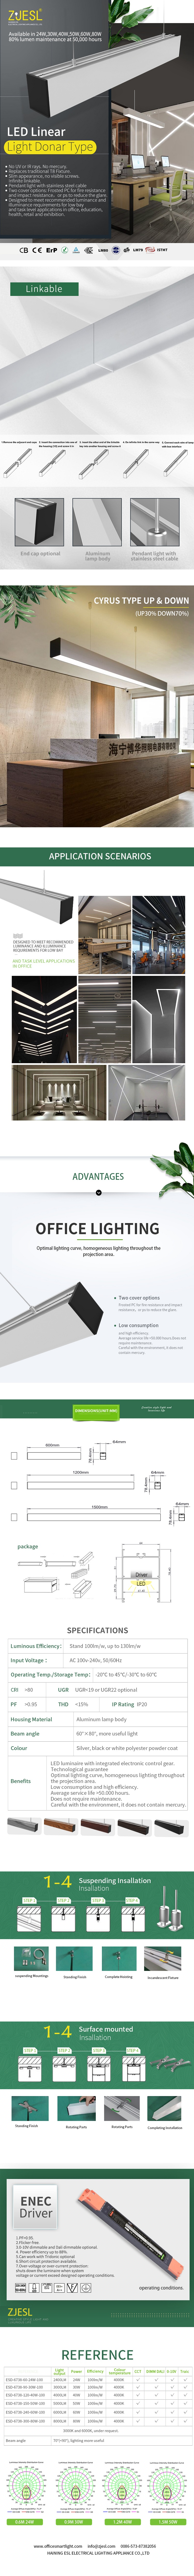 Seamless Linkable 50W LED Linear light Ceiling mounted for commercial and office application